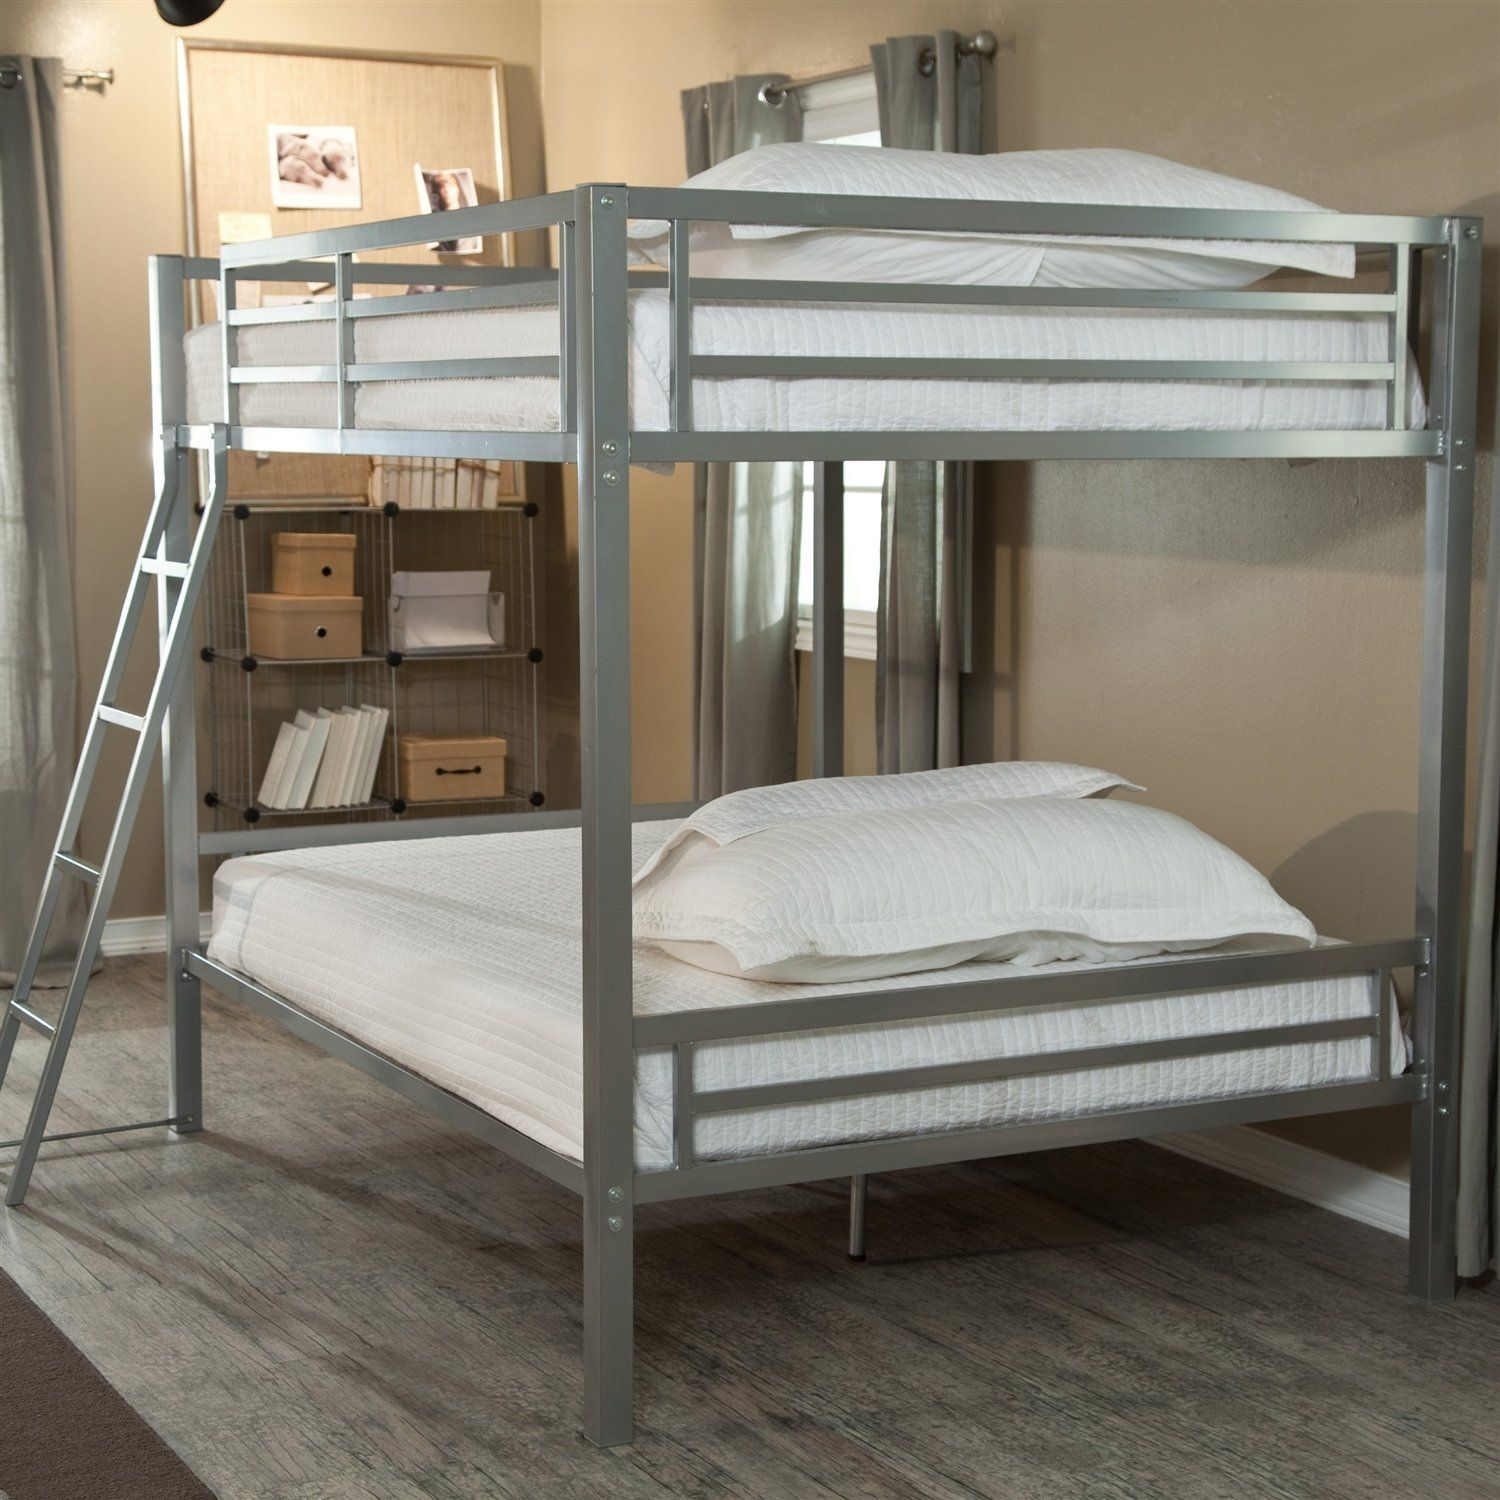 Loft bed plans for full size mattress  Full over Full Size Bunk Bed with Ladder in Silver Metal Finish